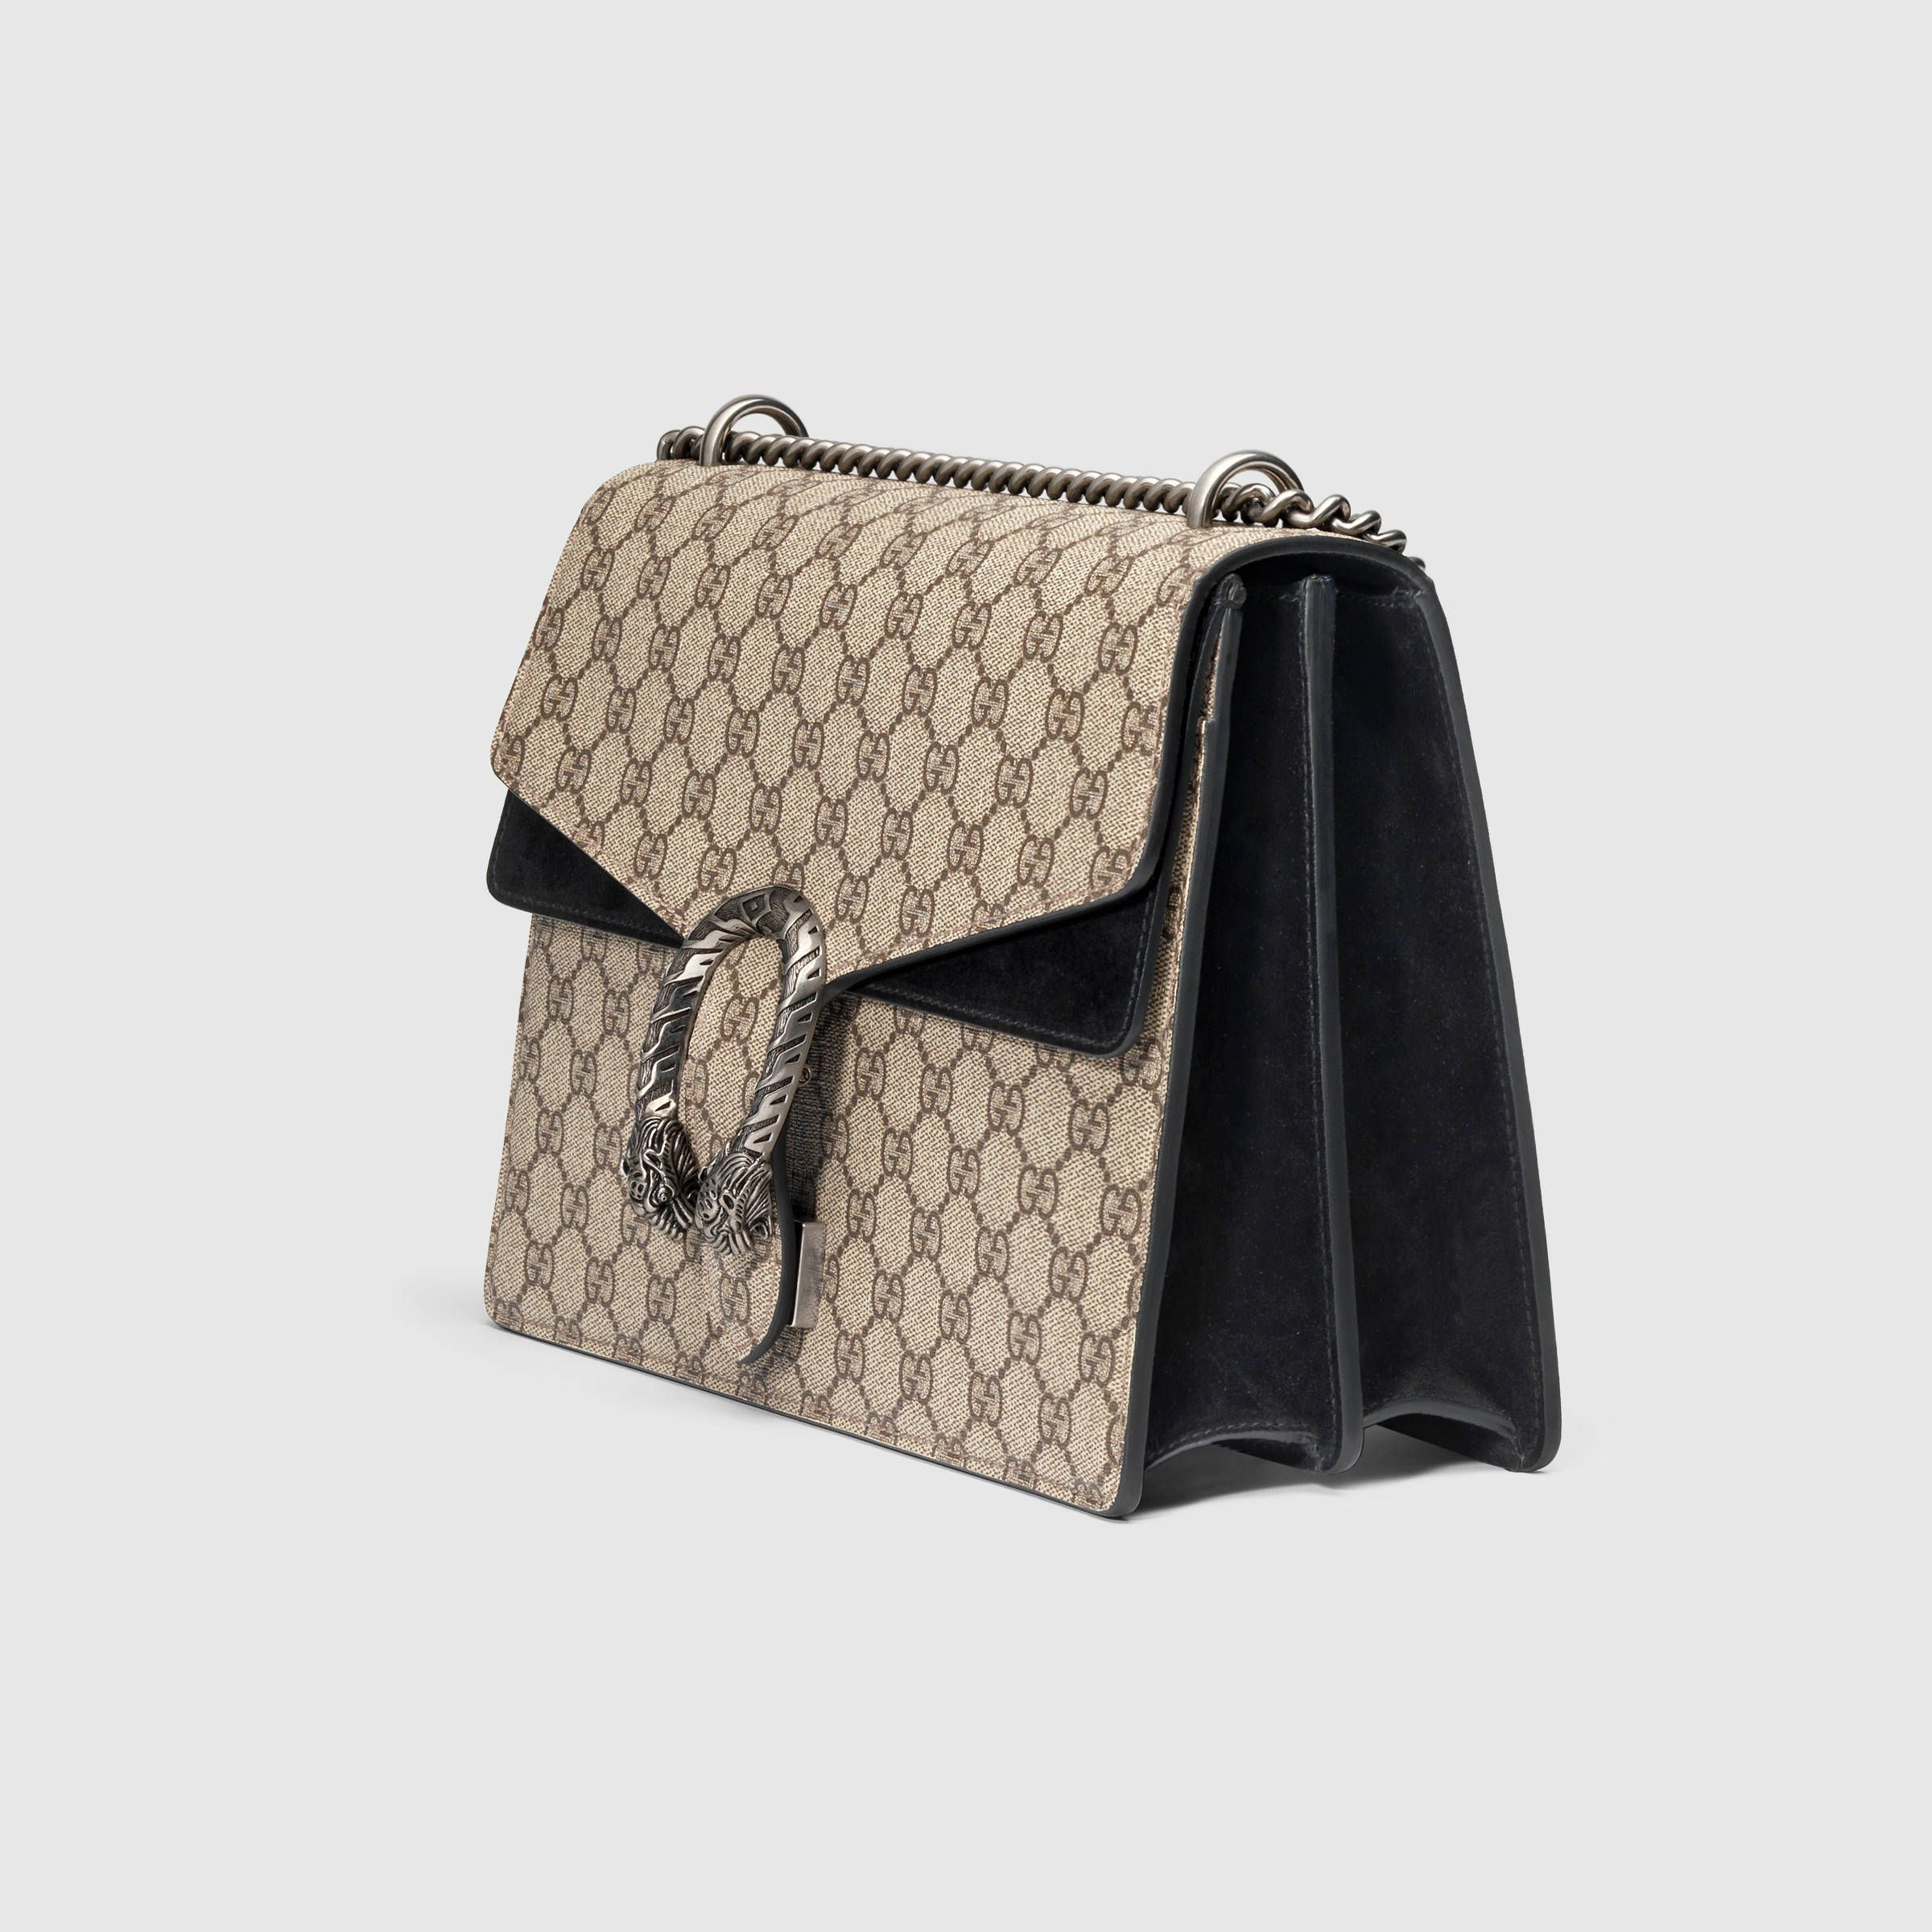 045973077ba Gucci Women - Gucci Dionysus Beige Ebony GG Supreme canvas w Black Suede  Detail shoulder bag -  2